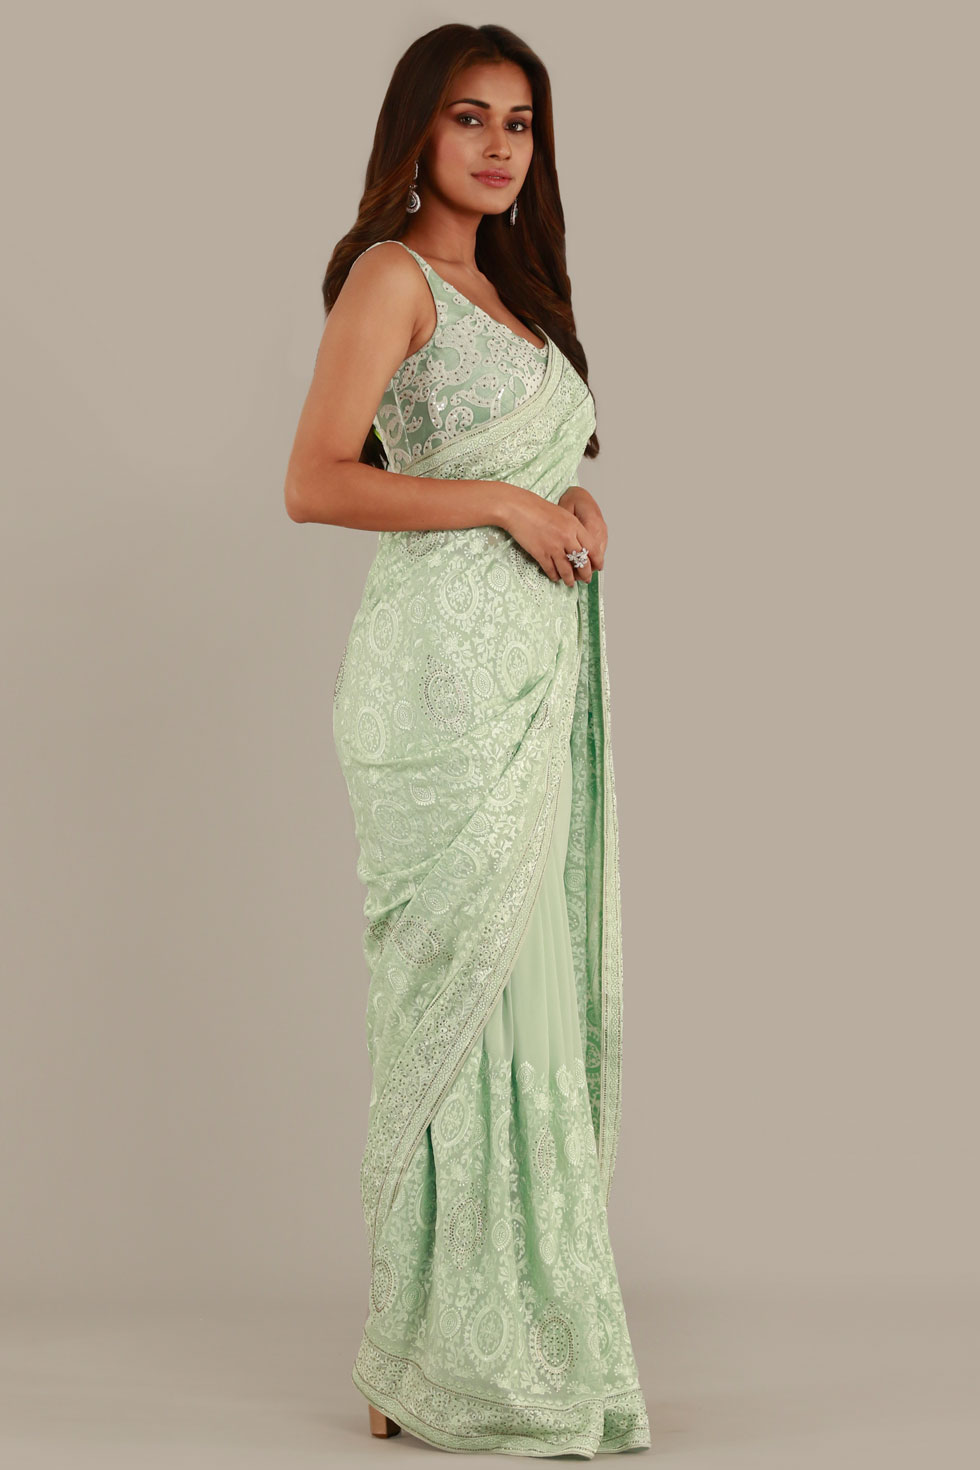 Pear green classic saree with ivory thread work, stone embellishments and matching choli